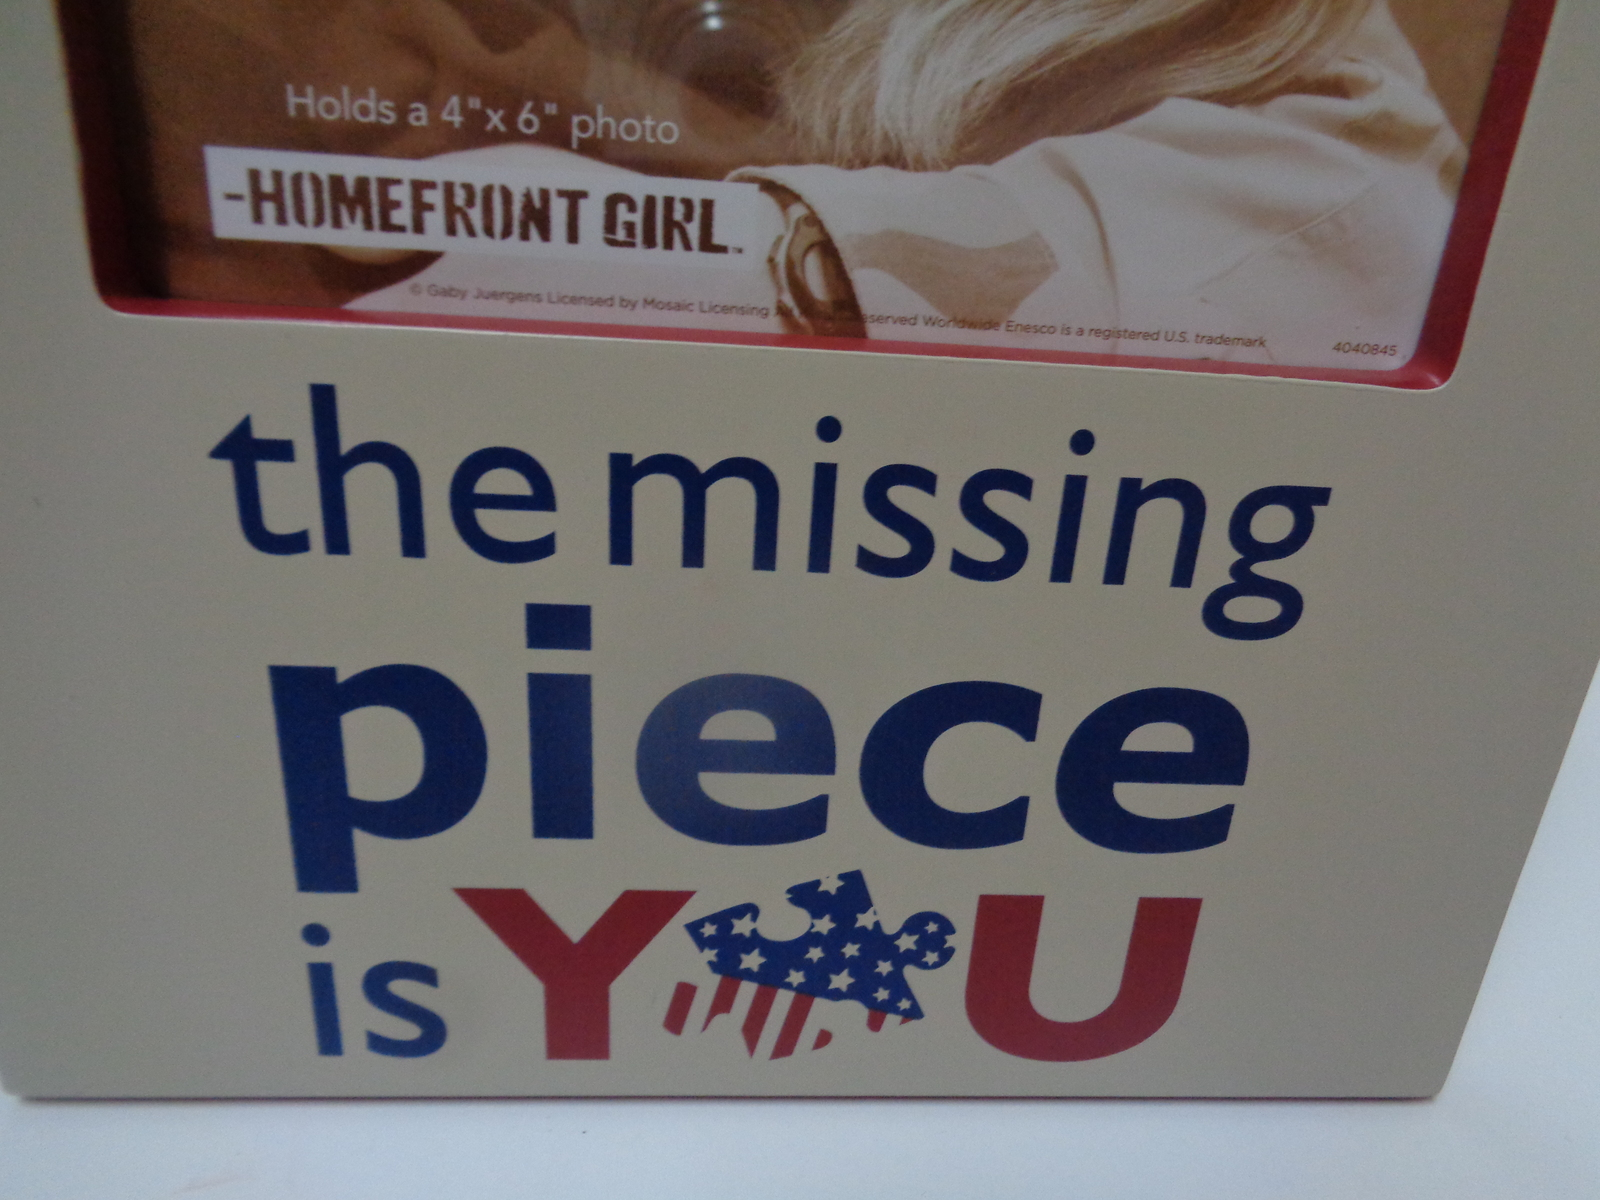 THE MISSING PIECE IS YOU Homefront Girl Wood Photo Frame NWT 4 x 4 photo